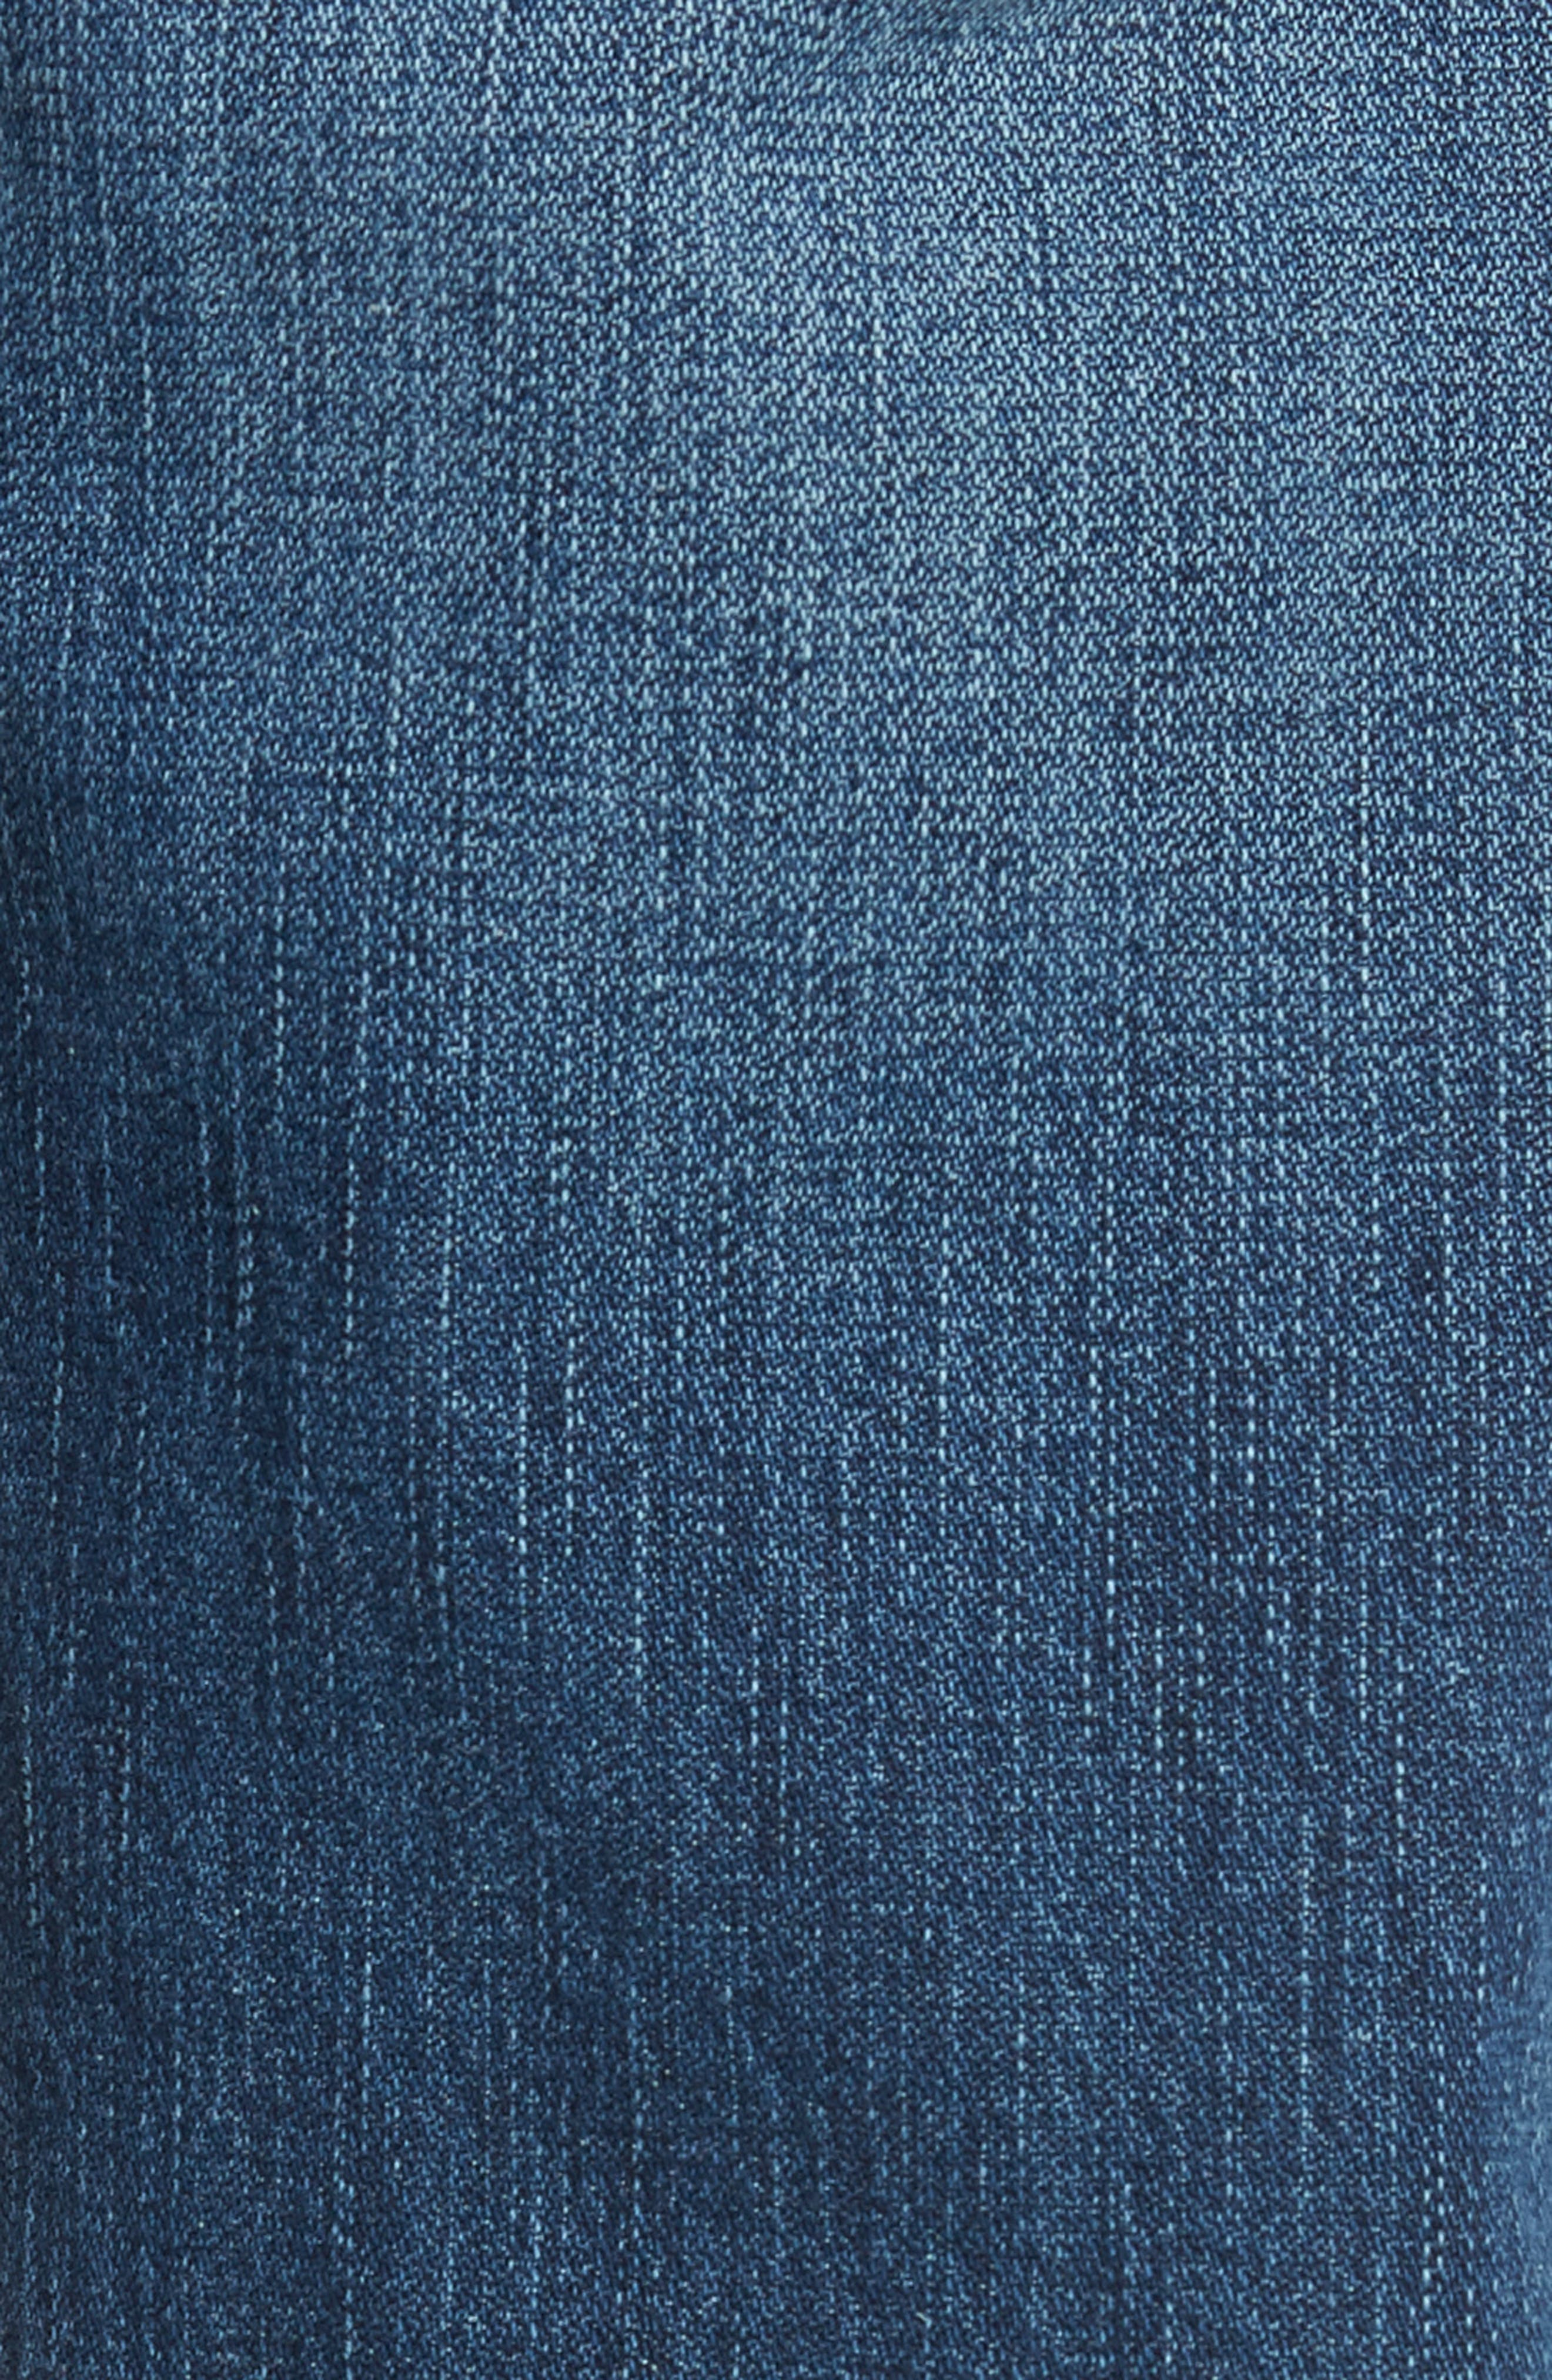 Geno Straight Fit Jeans,                             Alternate thumbnail 5, color,                             WORN PASTURE